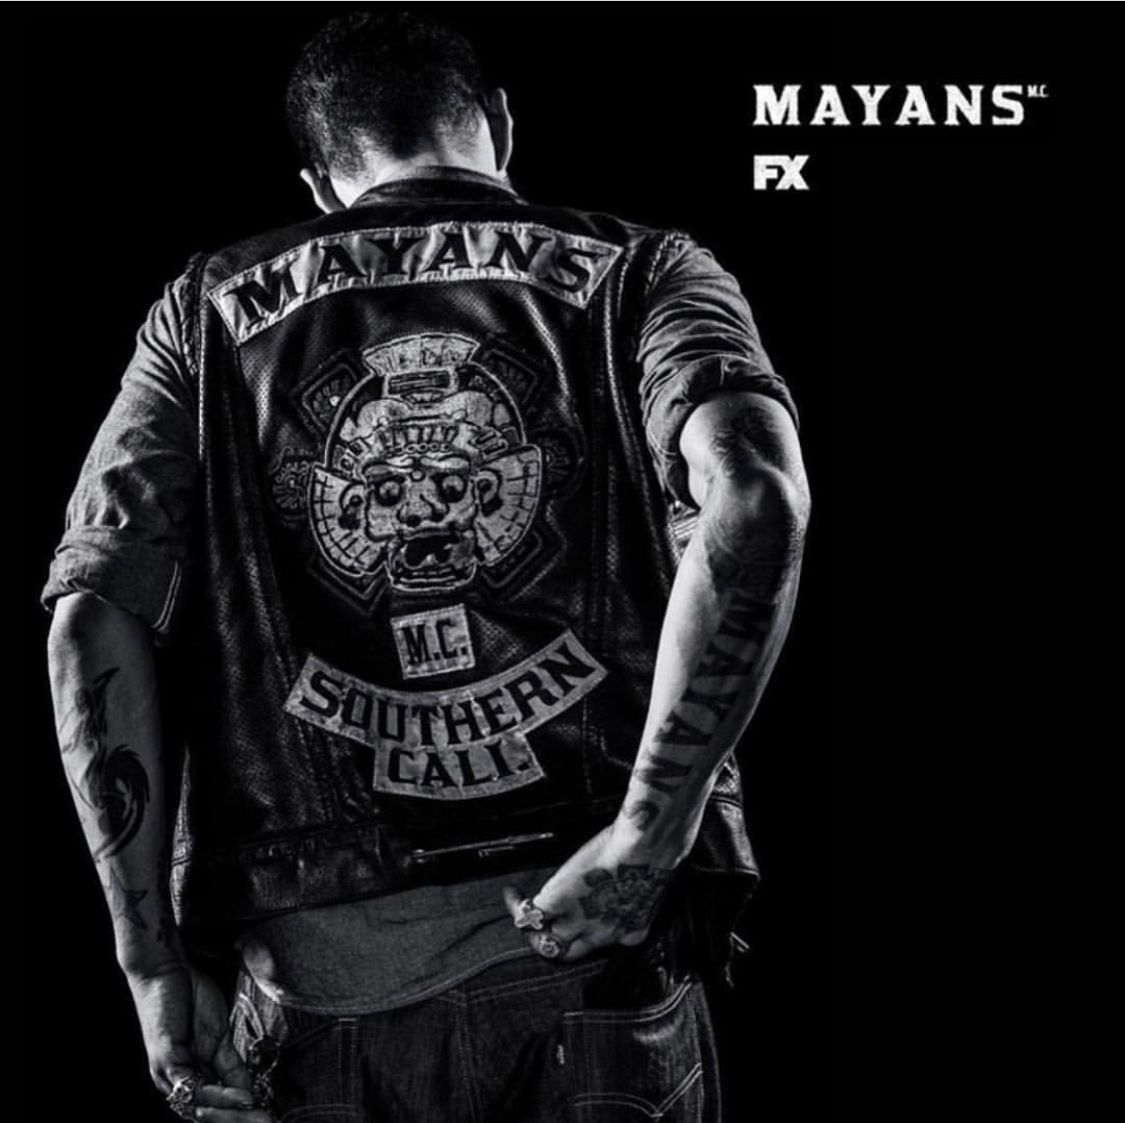 Mayans (on FX) great 1st episode! I'm along for the